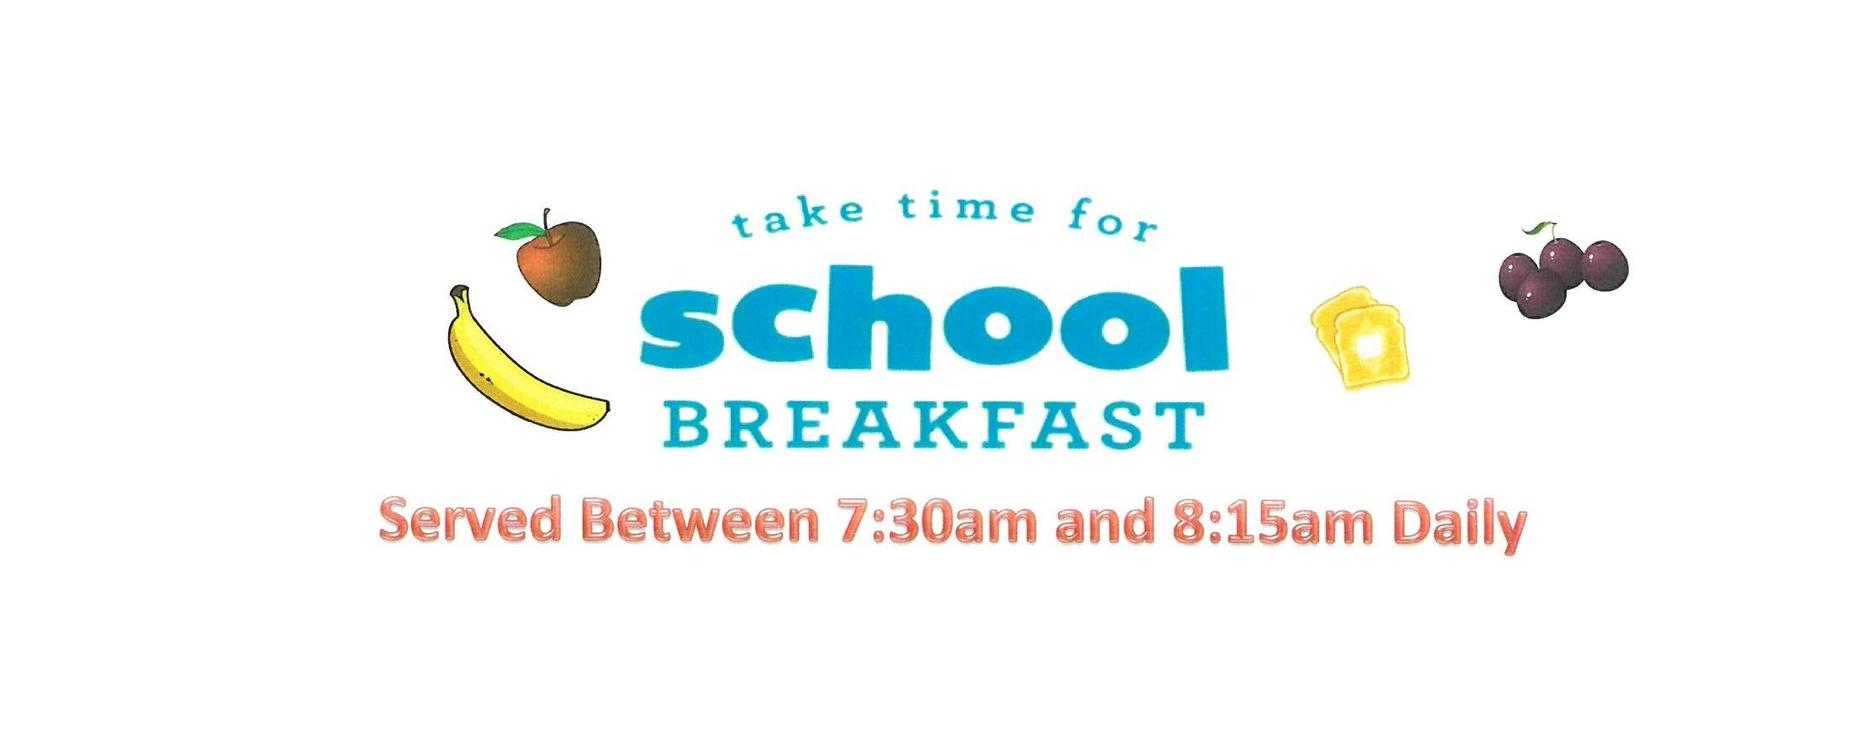 Take time for school breakfast